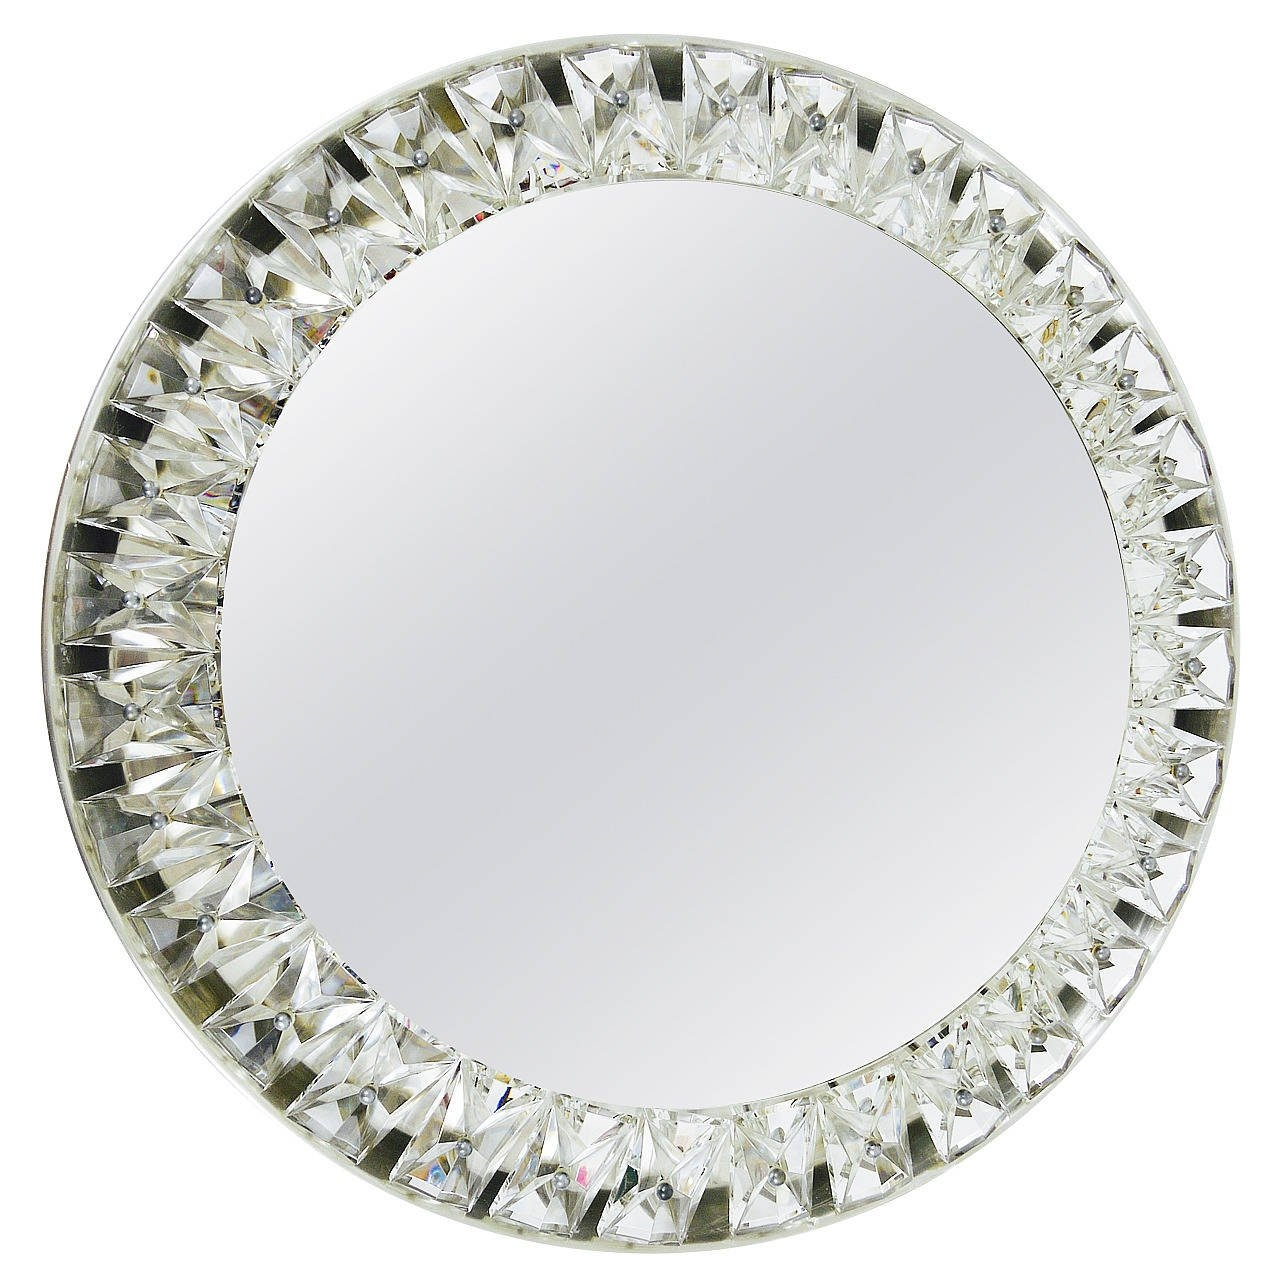 Big Round Bakalowits Backlit Wall Mirror With Huge Crystals Throughout Wall Mirror With Crystals (Image 3 of 15)